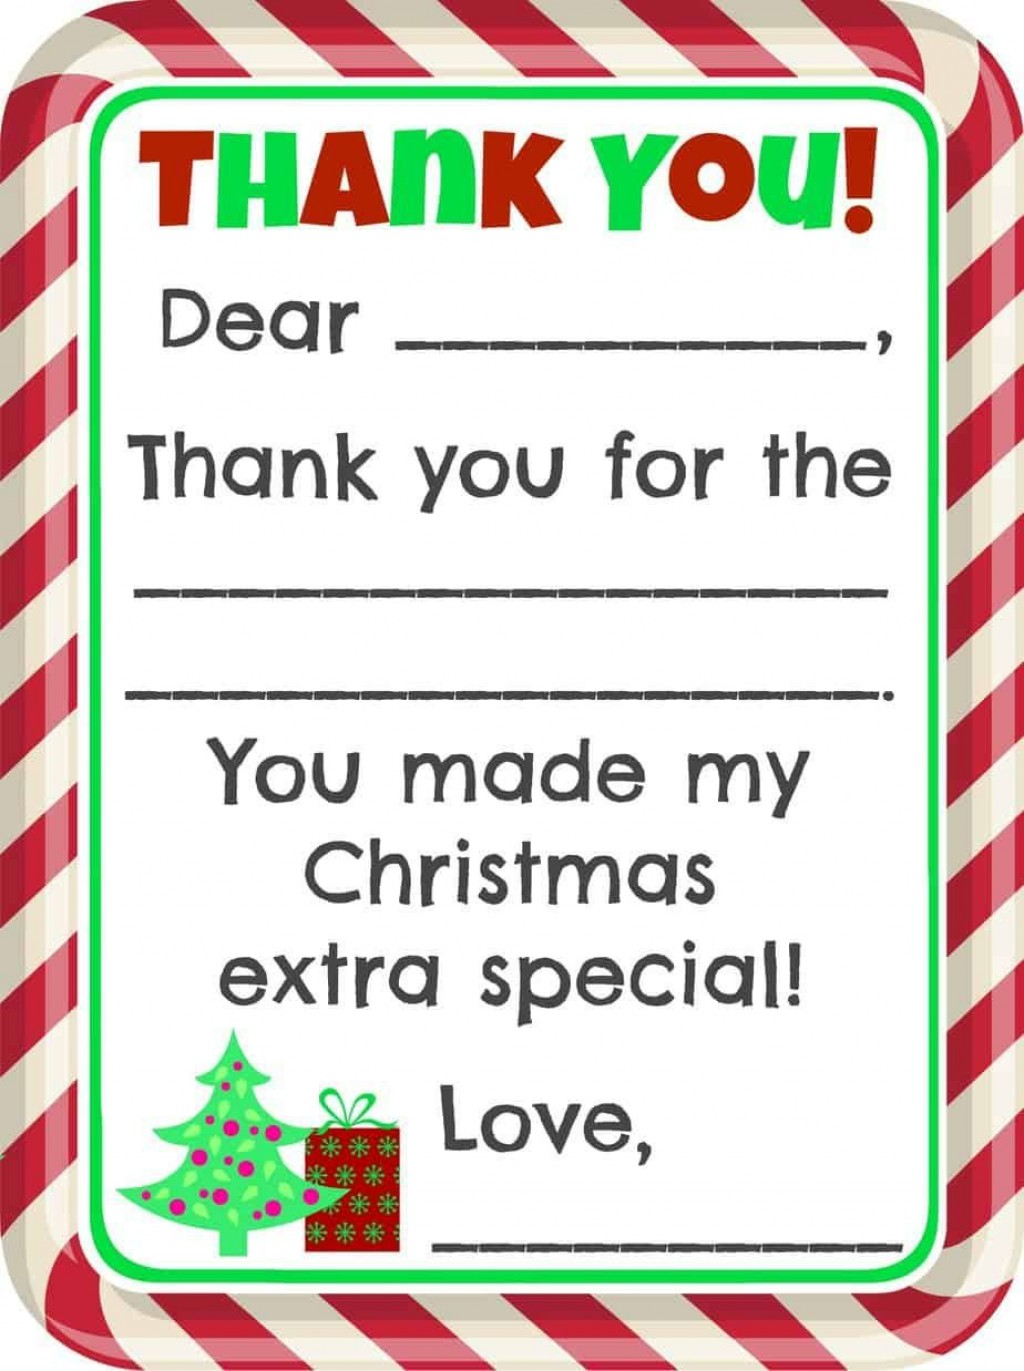 005 Marvelou Christma Thank You Note Template Free Image  Letter CardLarge